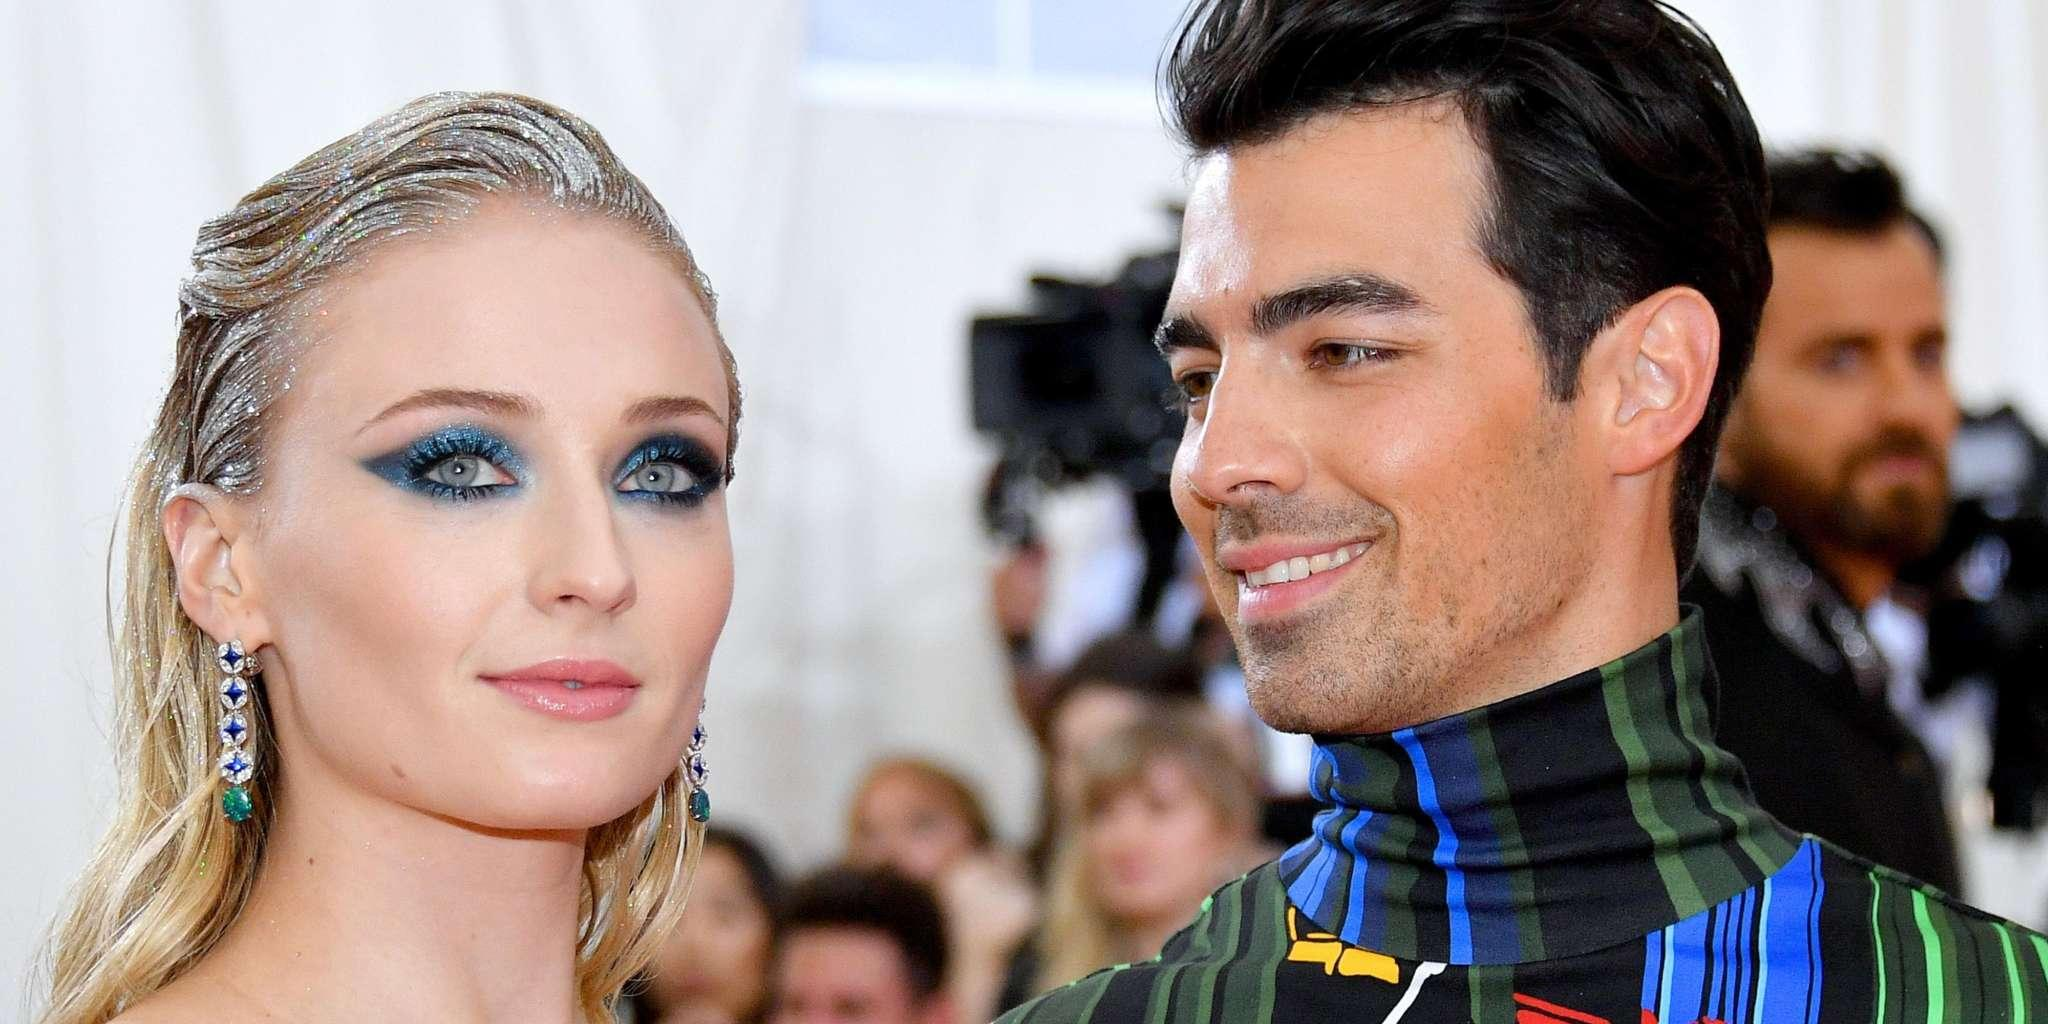 Sophie Turner And Joe Jonas Reportedly Officially Parents After Welcoming Daughter - Find Out Her Unique Name!